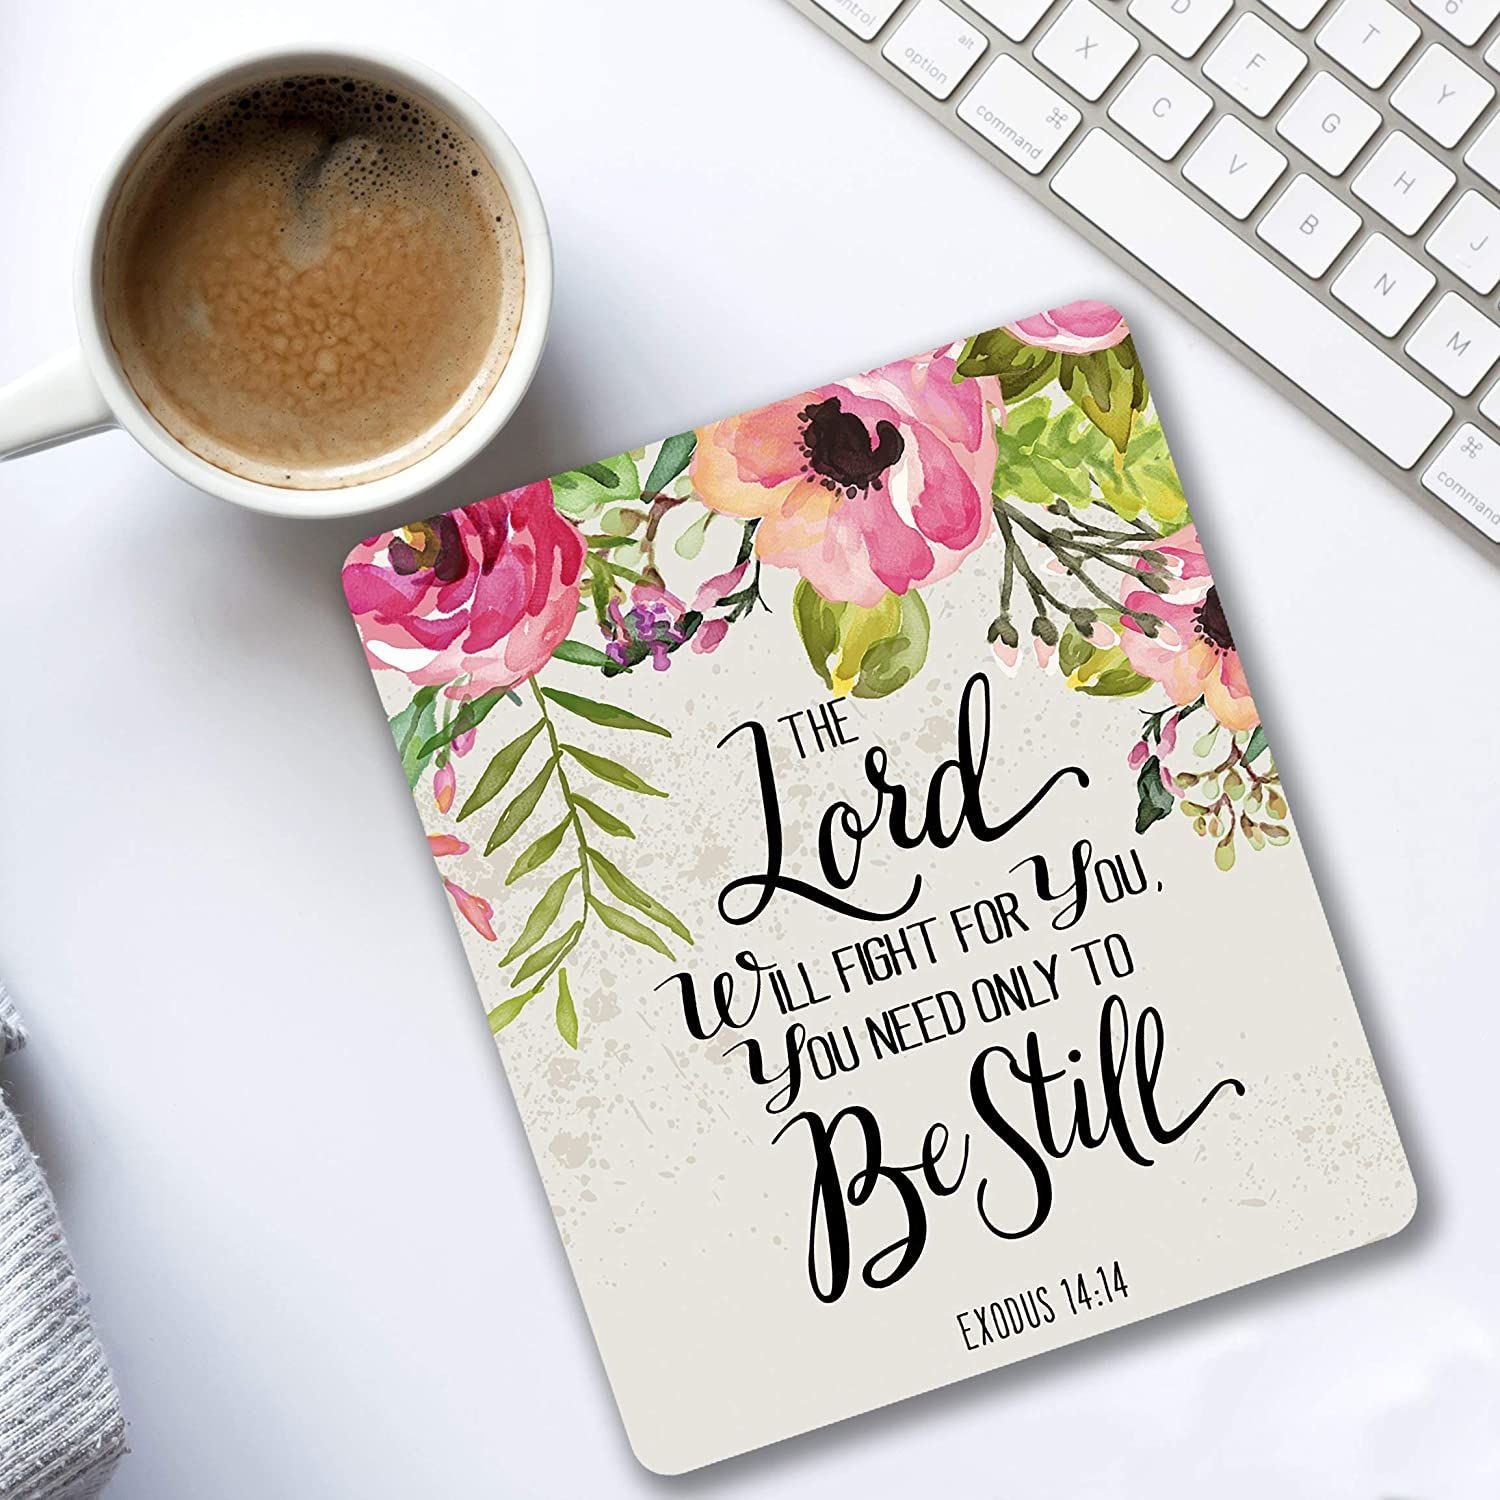 The Lord will fight for you Exodus 14:14 Christian quote - Cubicle Decor Mouse pad with bible verse - Pretty office Decorate your space pink, green, gray floral design - Gifts for women